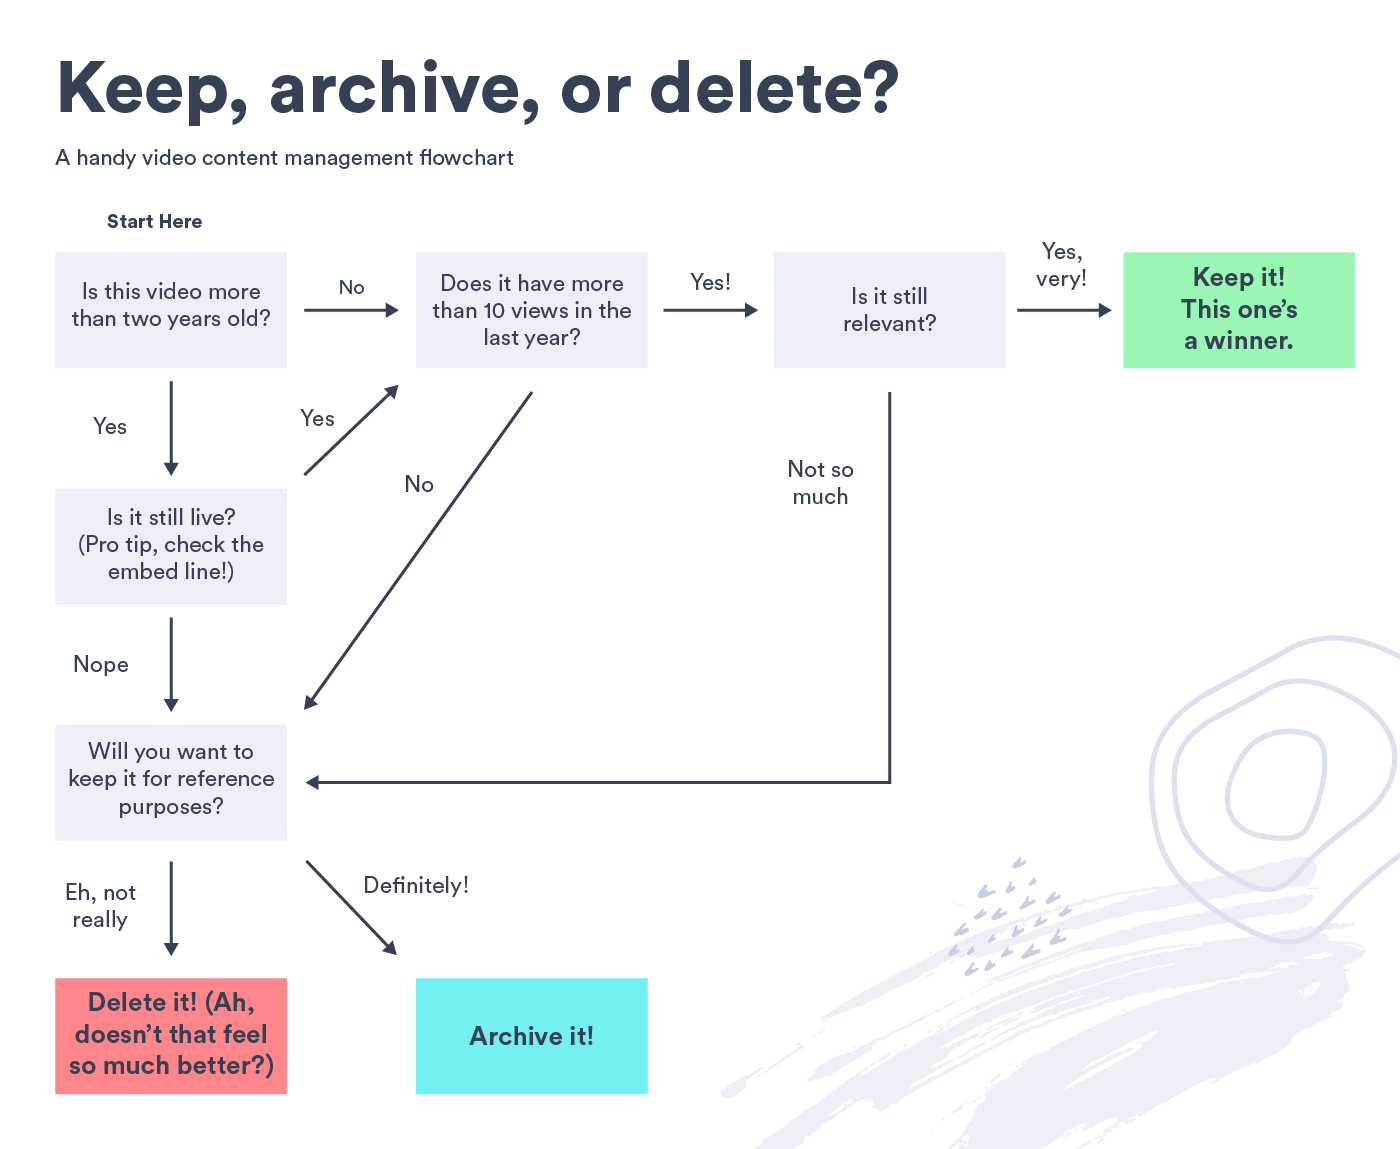 Keep, archive, or delete?